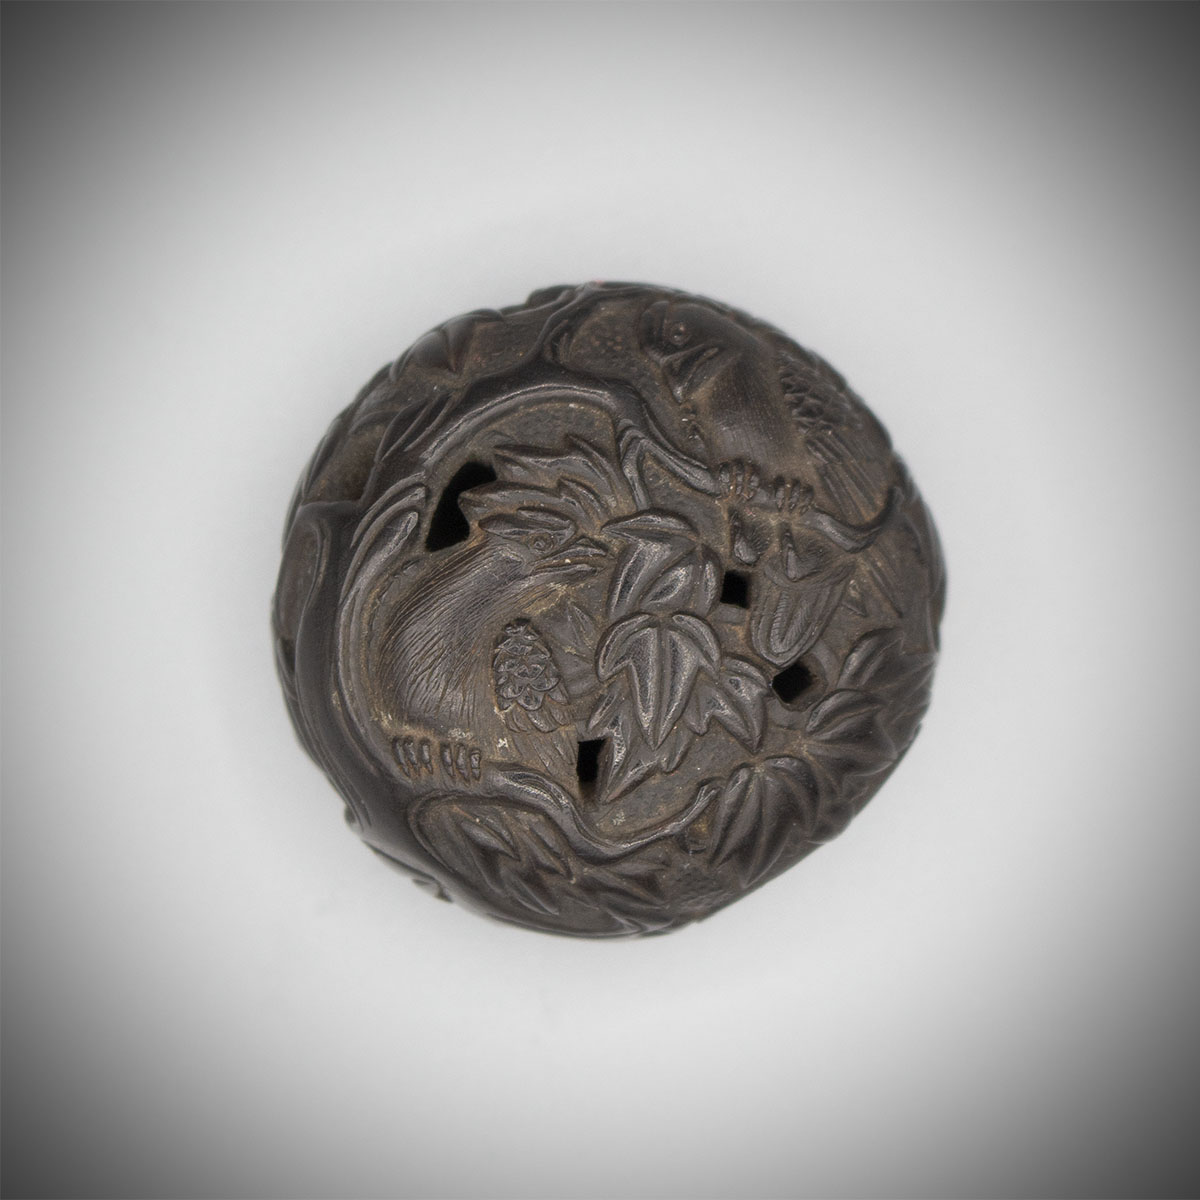 Dark Wood Manju Netsuke Carved with Two birds in a Mape Tree, MR3209_v1